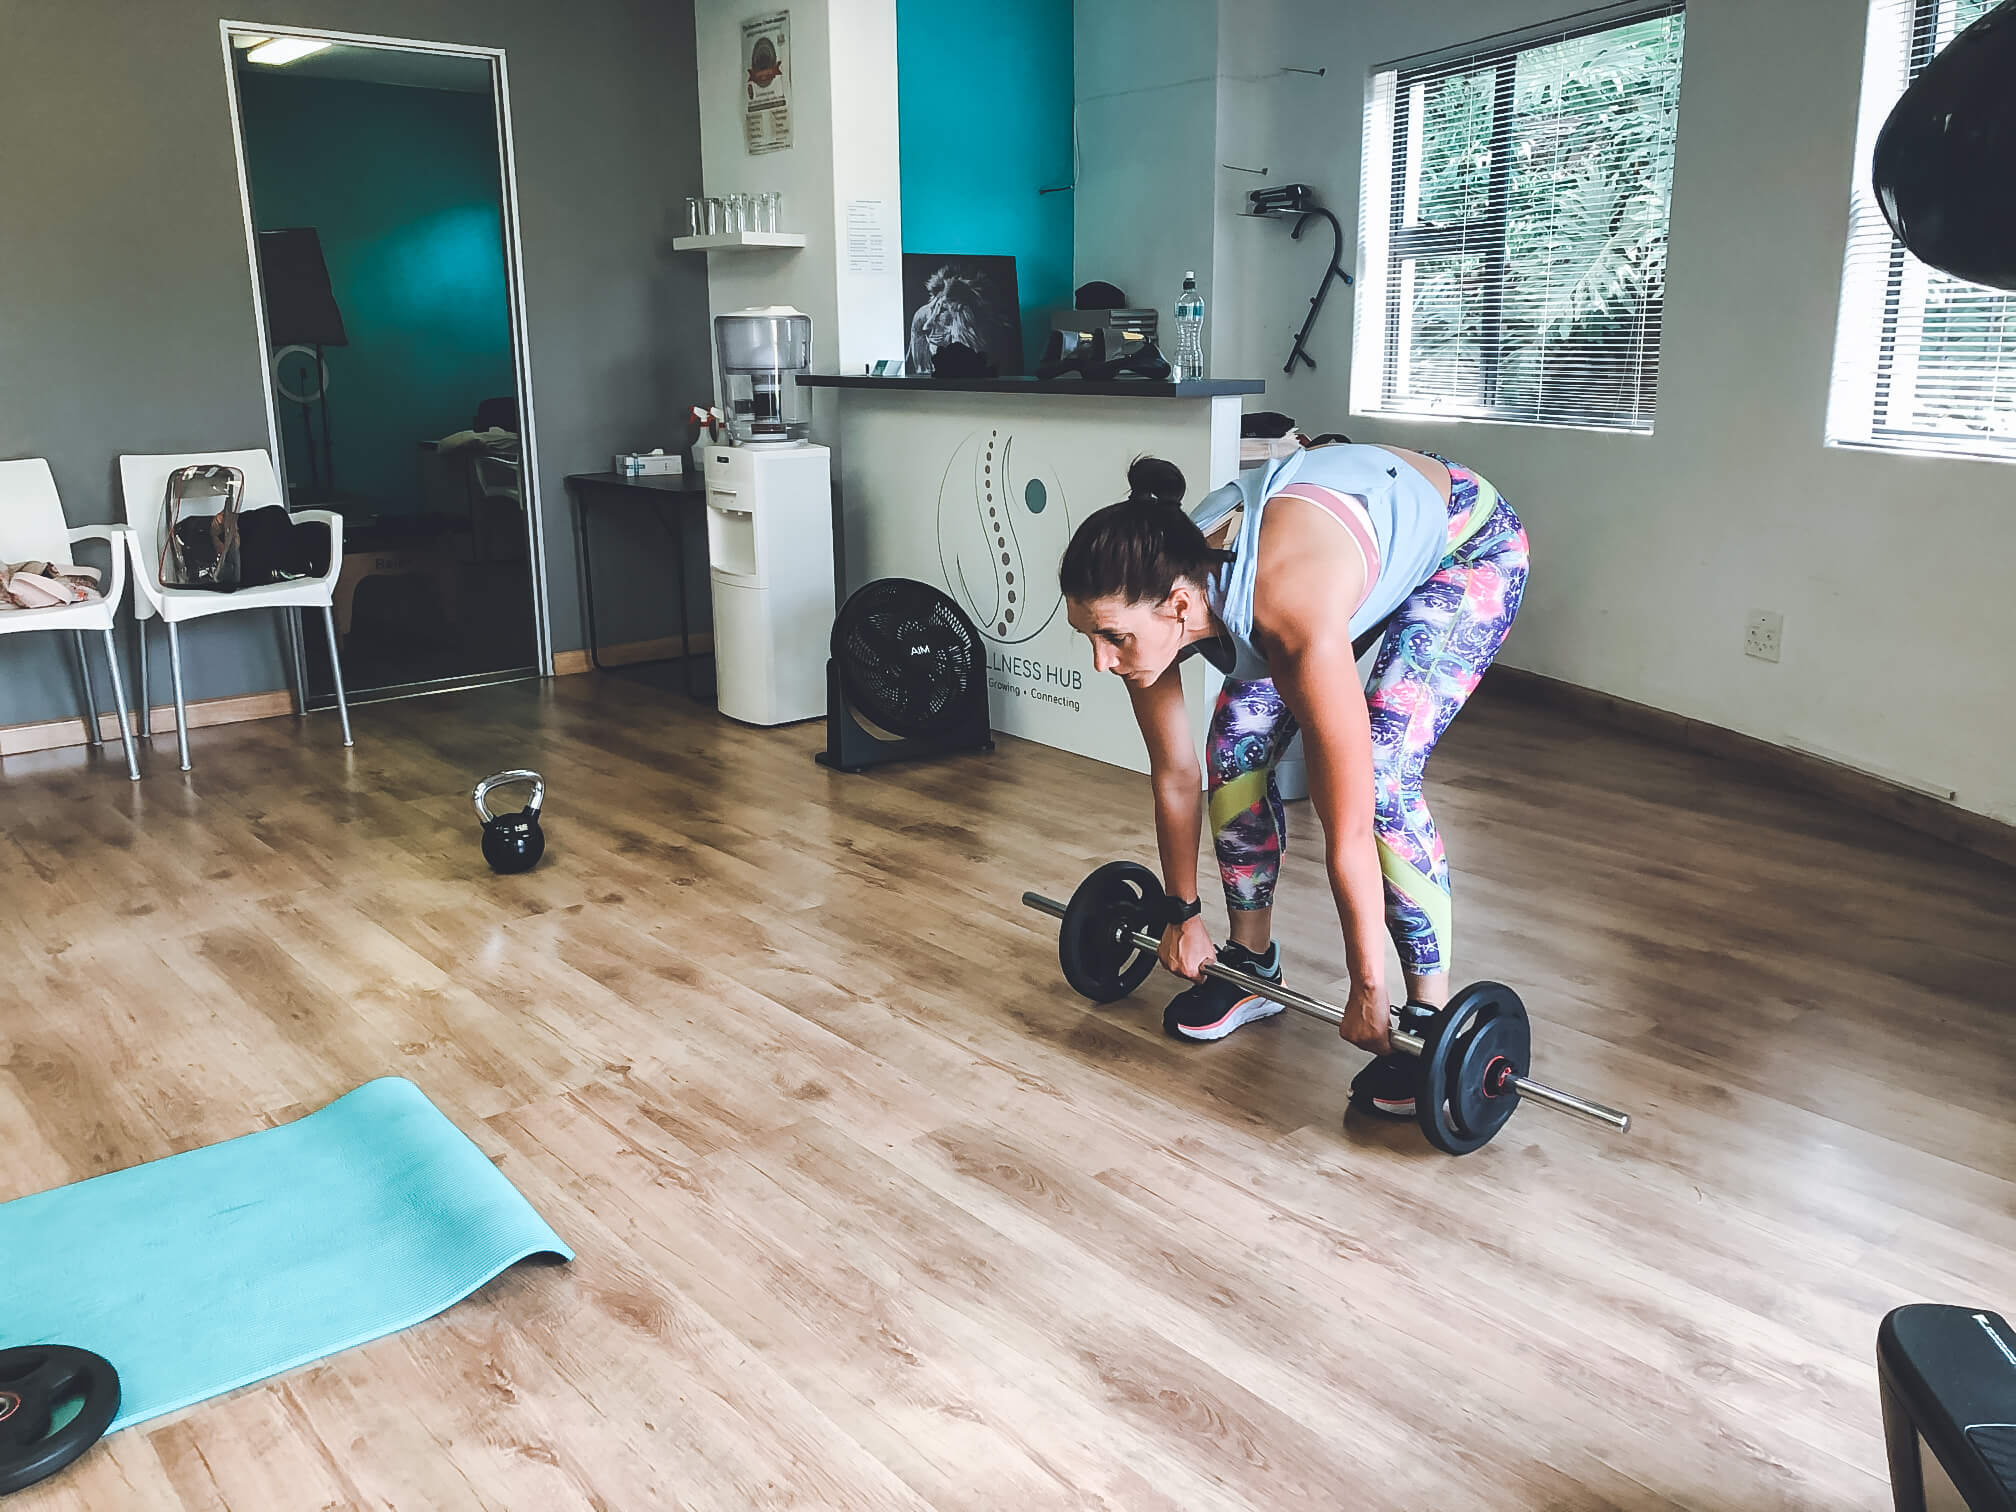 The Wellness Hub, Rand Park Ridge, Kaelan Hanslo, Biokineticist, Personal Training, Sports Massage, Rehab, Bootcamp, Training, Exercise classes, HIIT, Weight training, Weight loss, Muscle building, Fitness Studio, Johannesburg